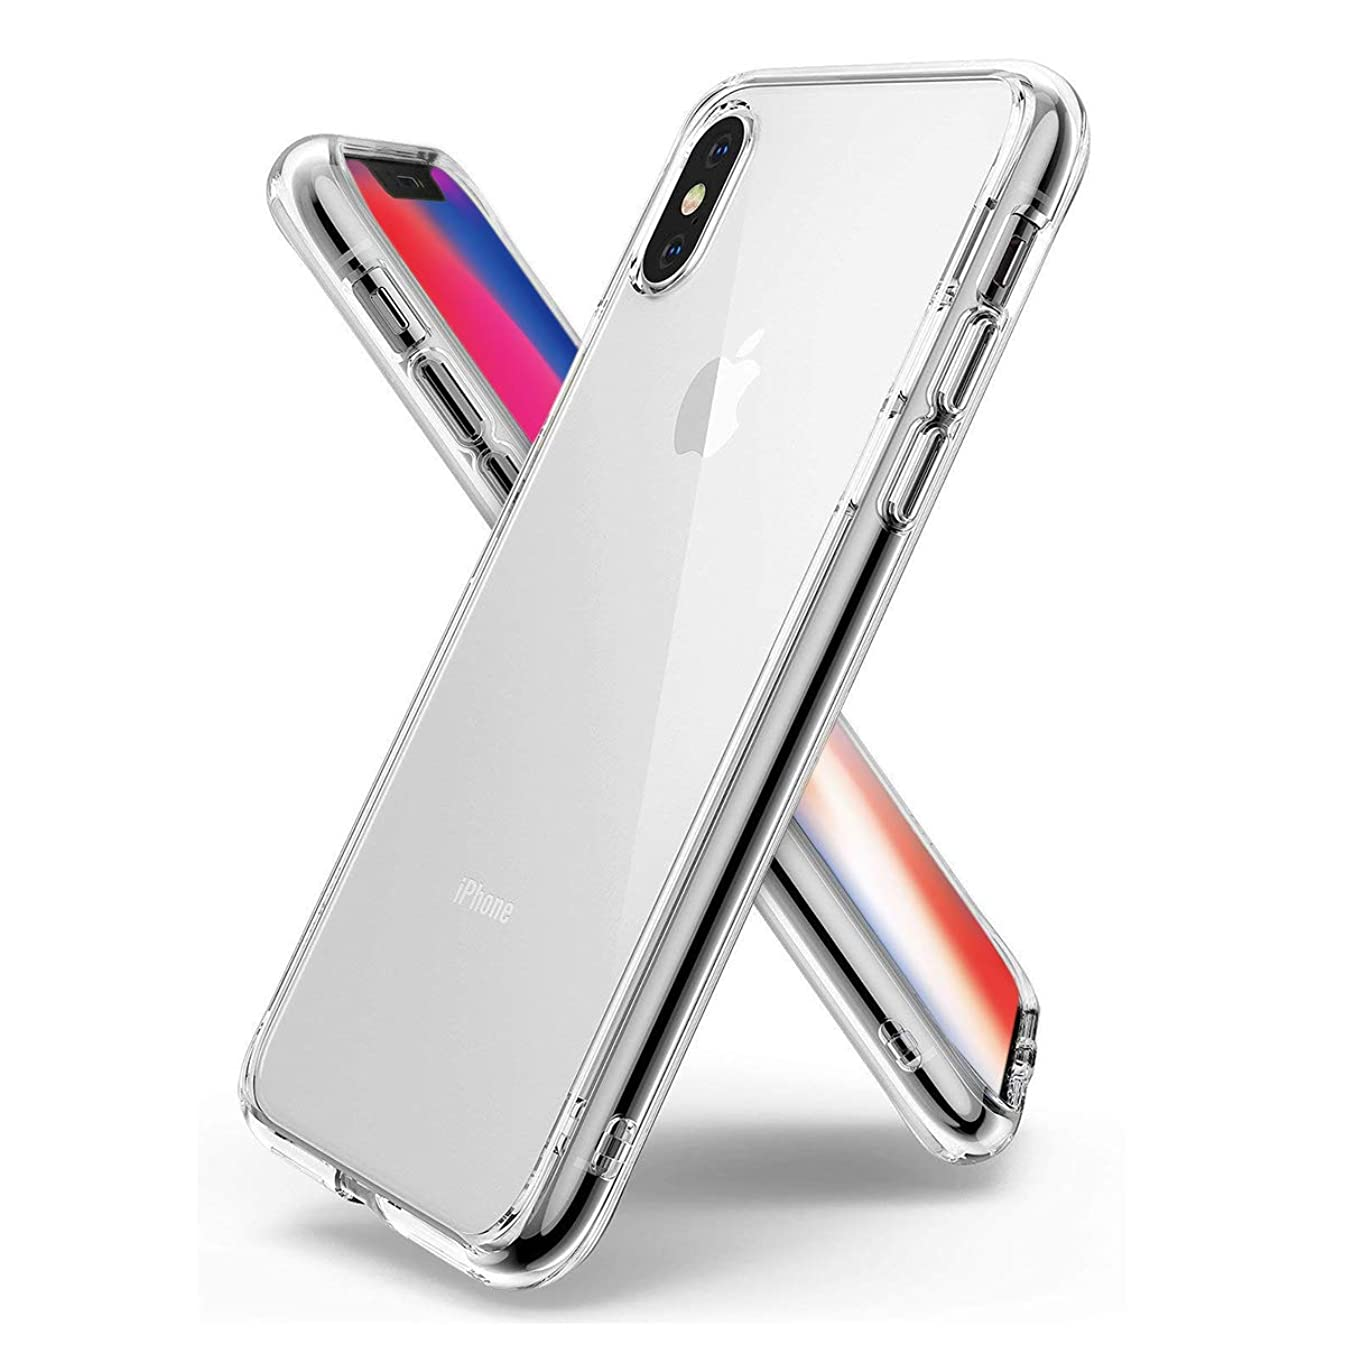 Alaxy Phone Case Compatible iPhone X Cases, Crystal Clear Soft TPU Skin Ultra-Thin [Slim Fit] Transparent Flexible Premium Cover [Wireless Charger Compatible] 8312